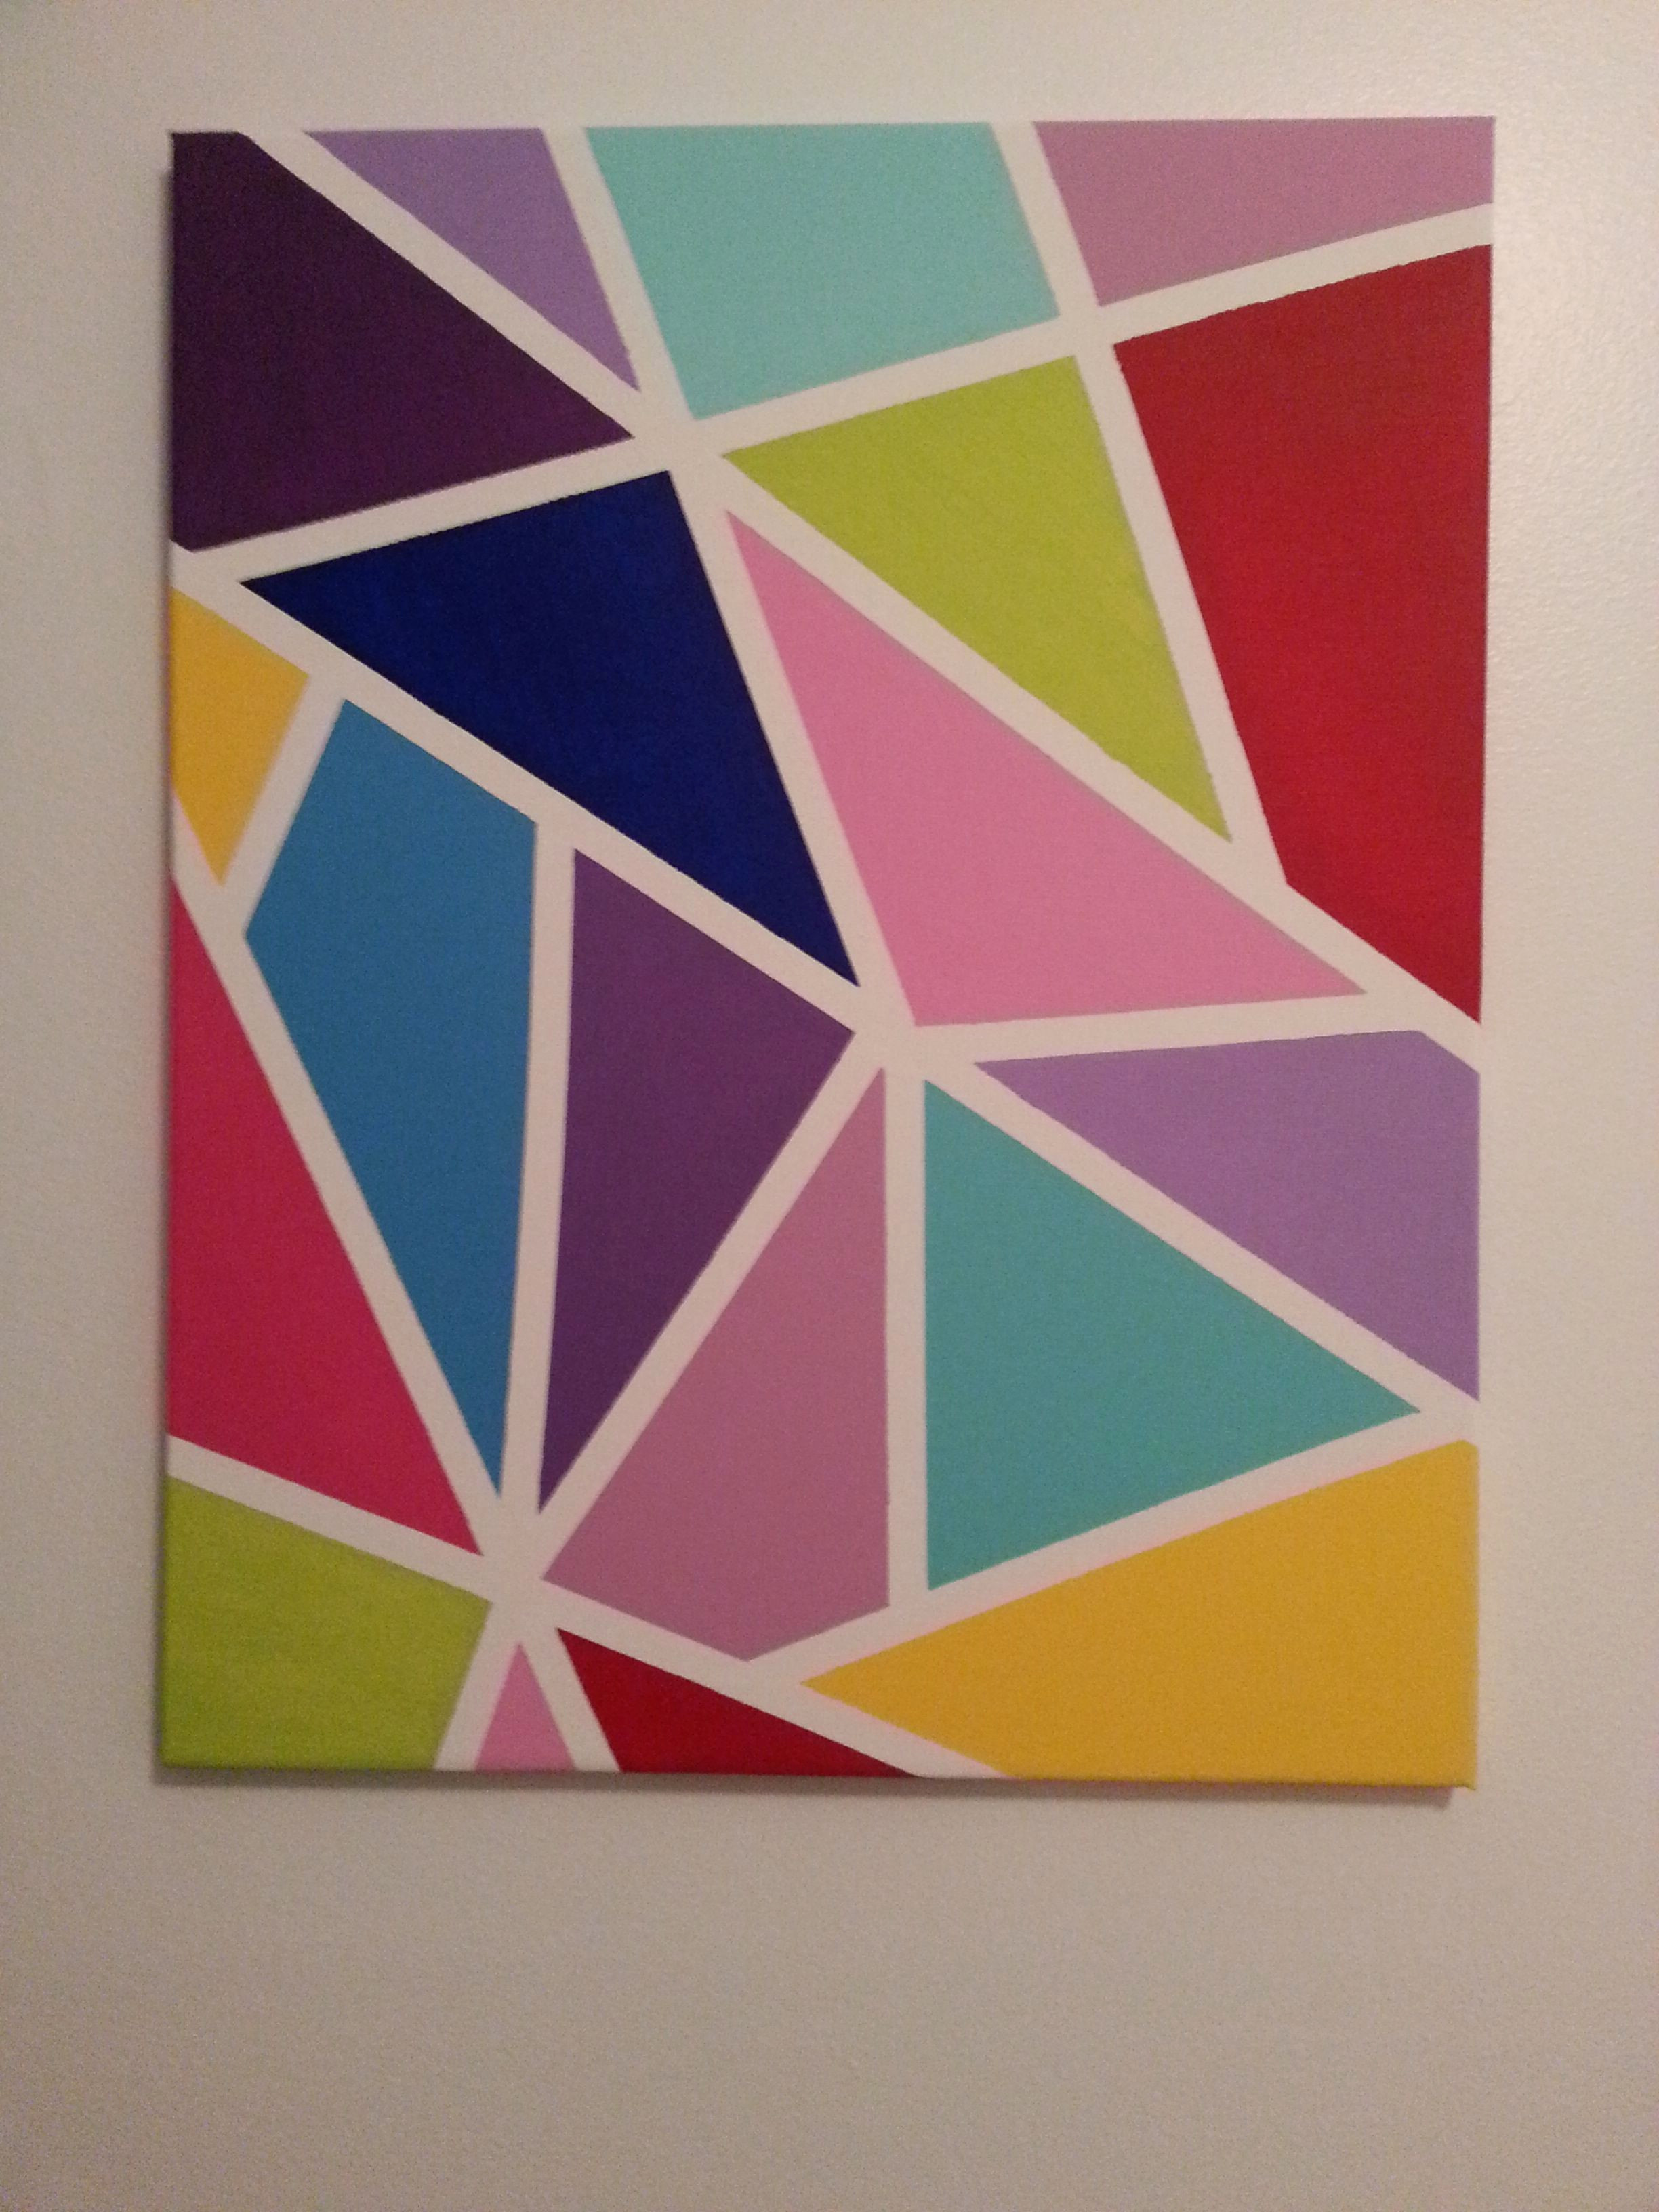 Galerie Peinture Fraiche Meilleur De Colorful Canvas Made with Masking Tape and Acrylic Paint Collection